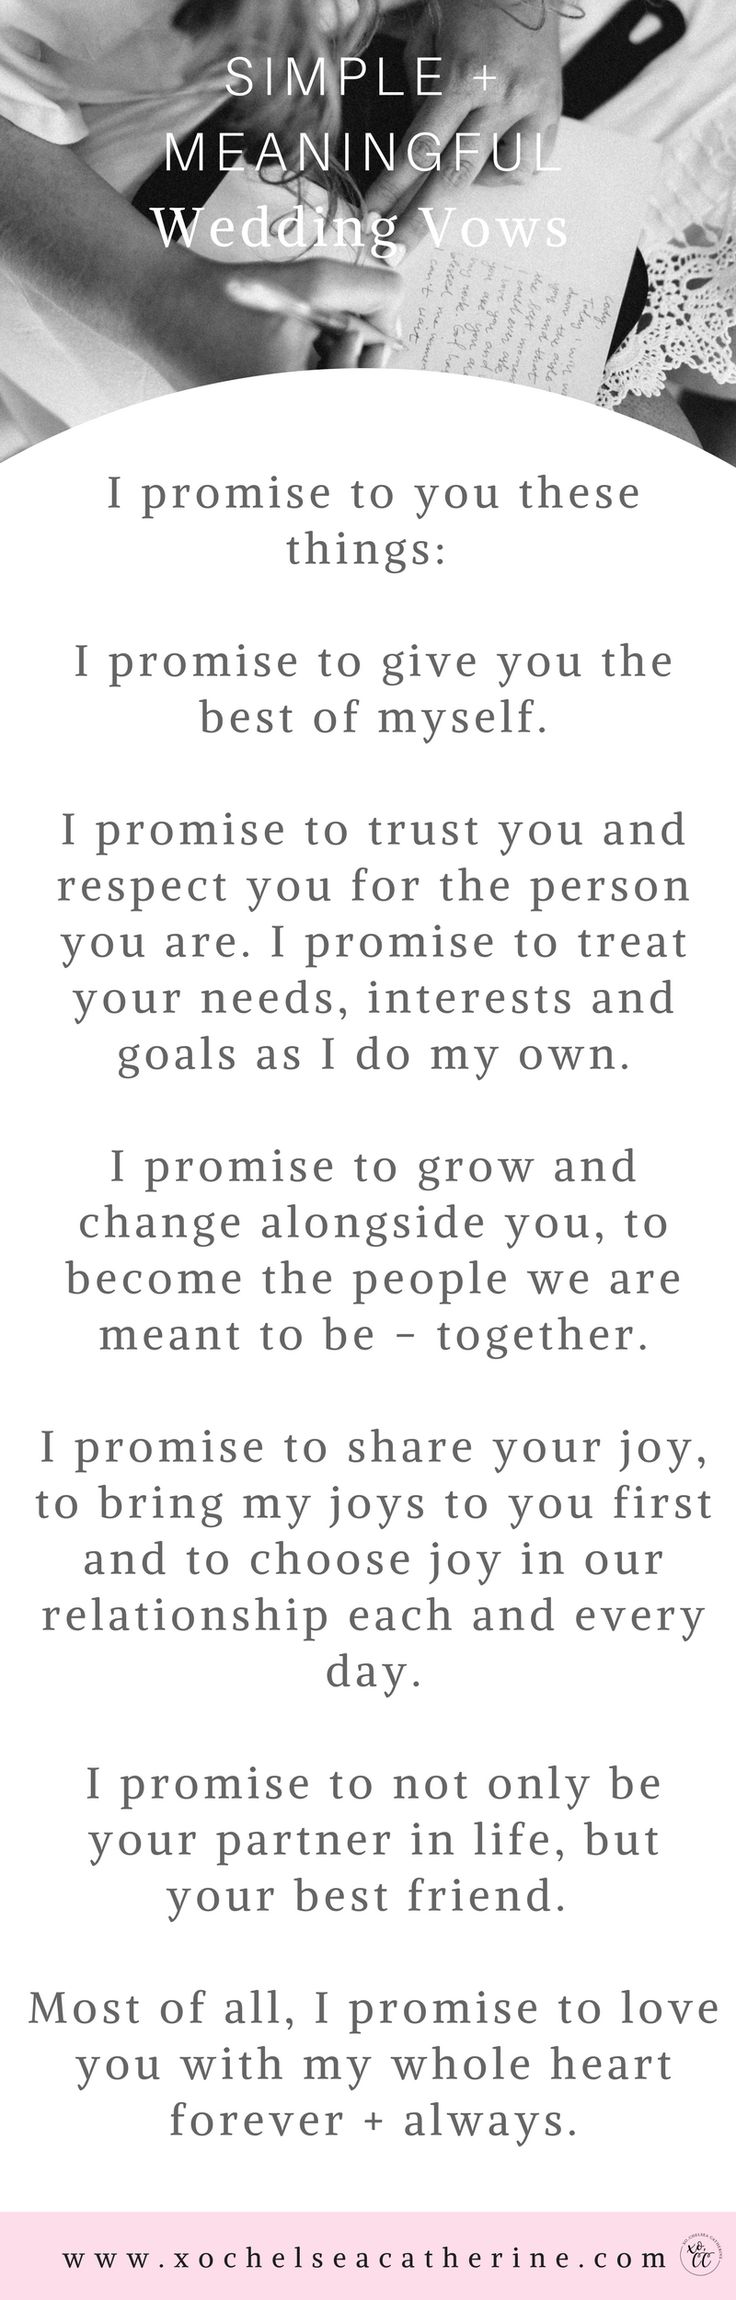 simple and meaningful wedding vows #Weddingsvows